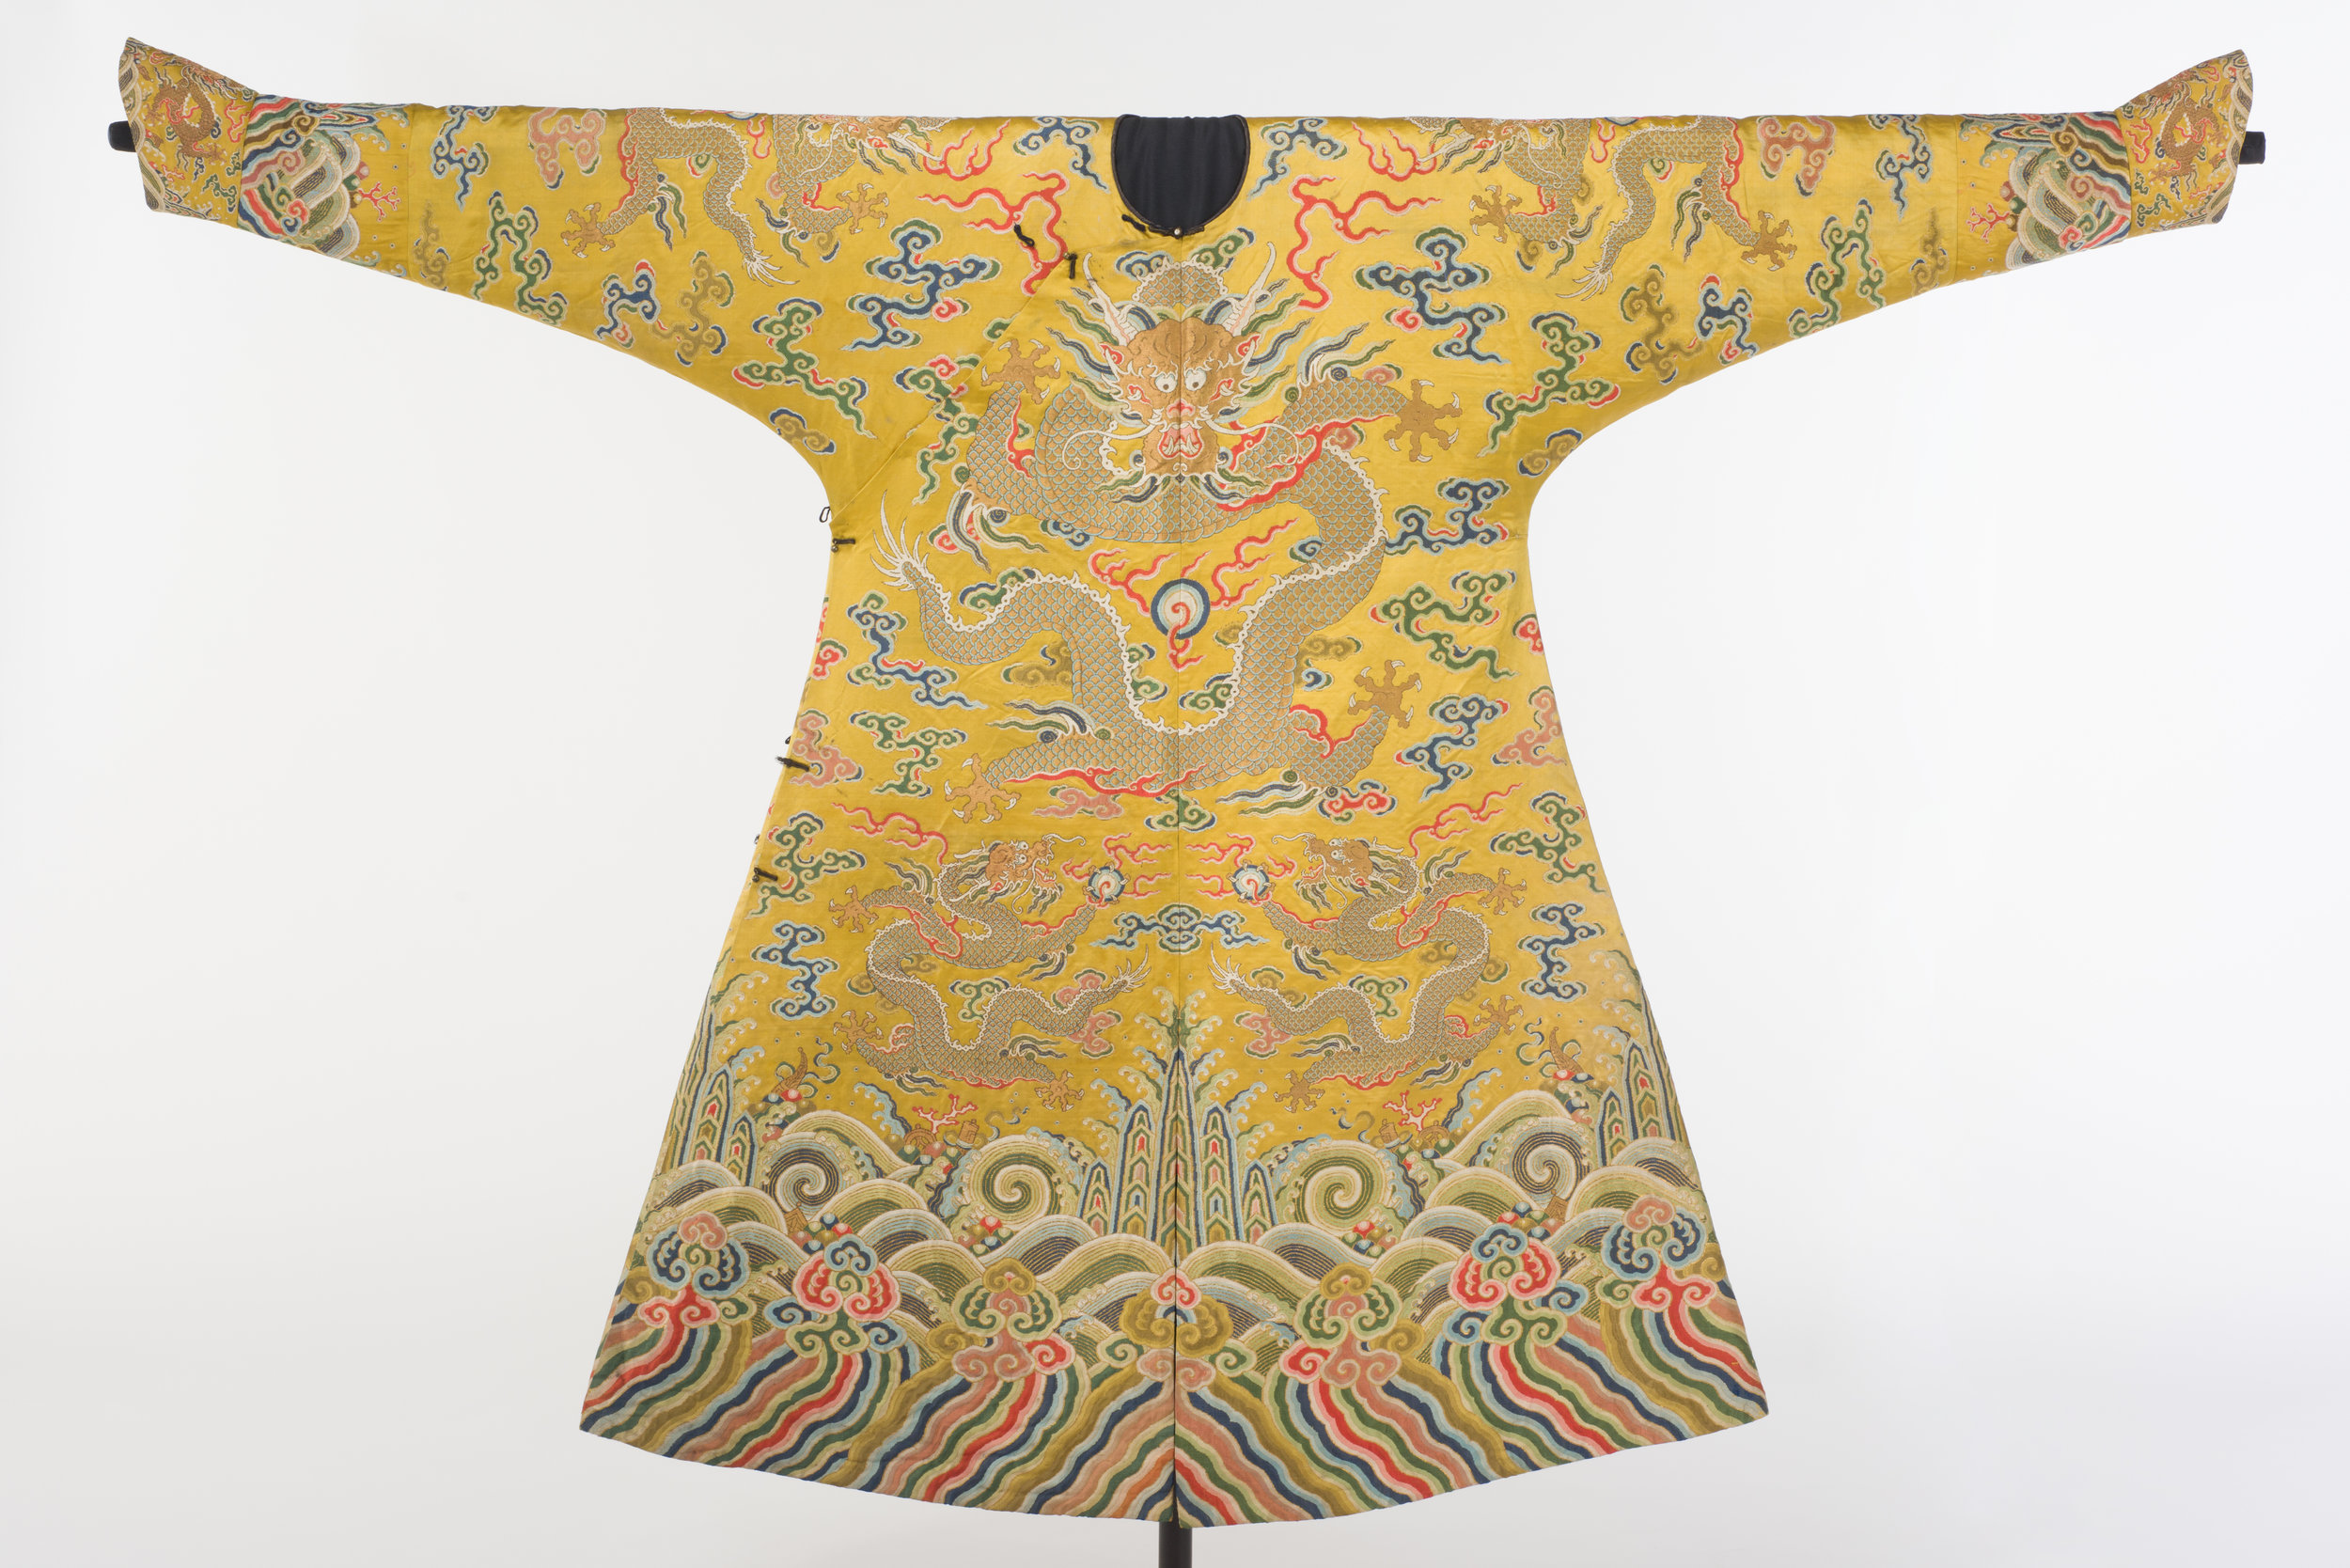 Dragon robe.  China, early 18th century (Qing dynasty) Brocaded silk satin, gold-wrapped threads, 137.8 x 204 cm. Asian Civilisations Museum. Image courtesy of Asian Civilisations Museum.